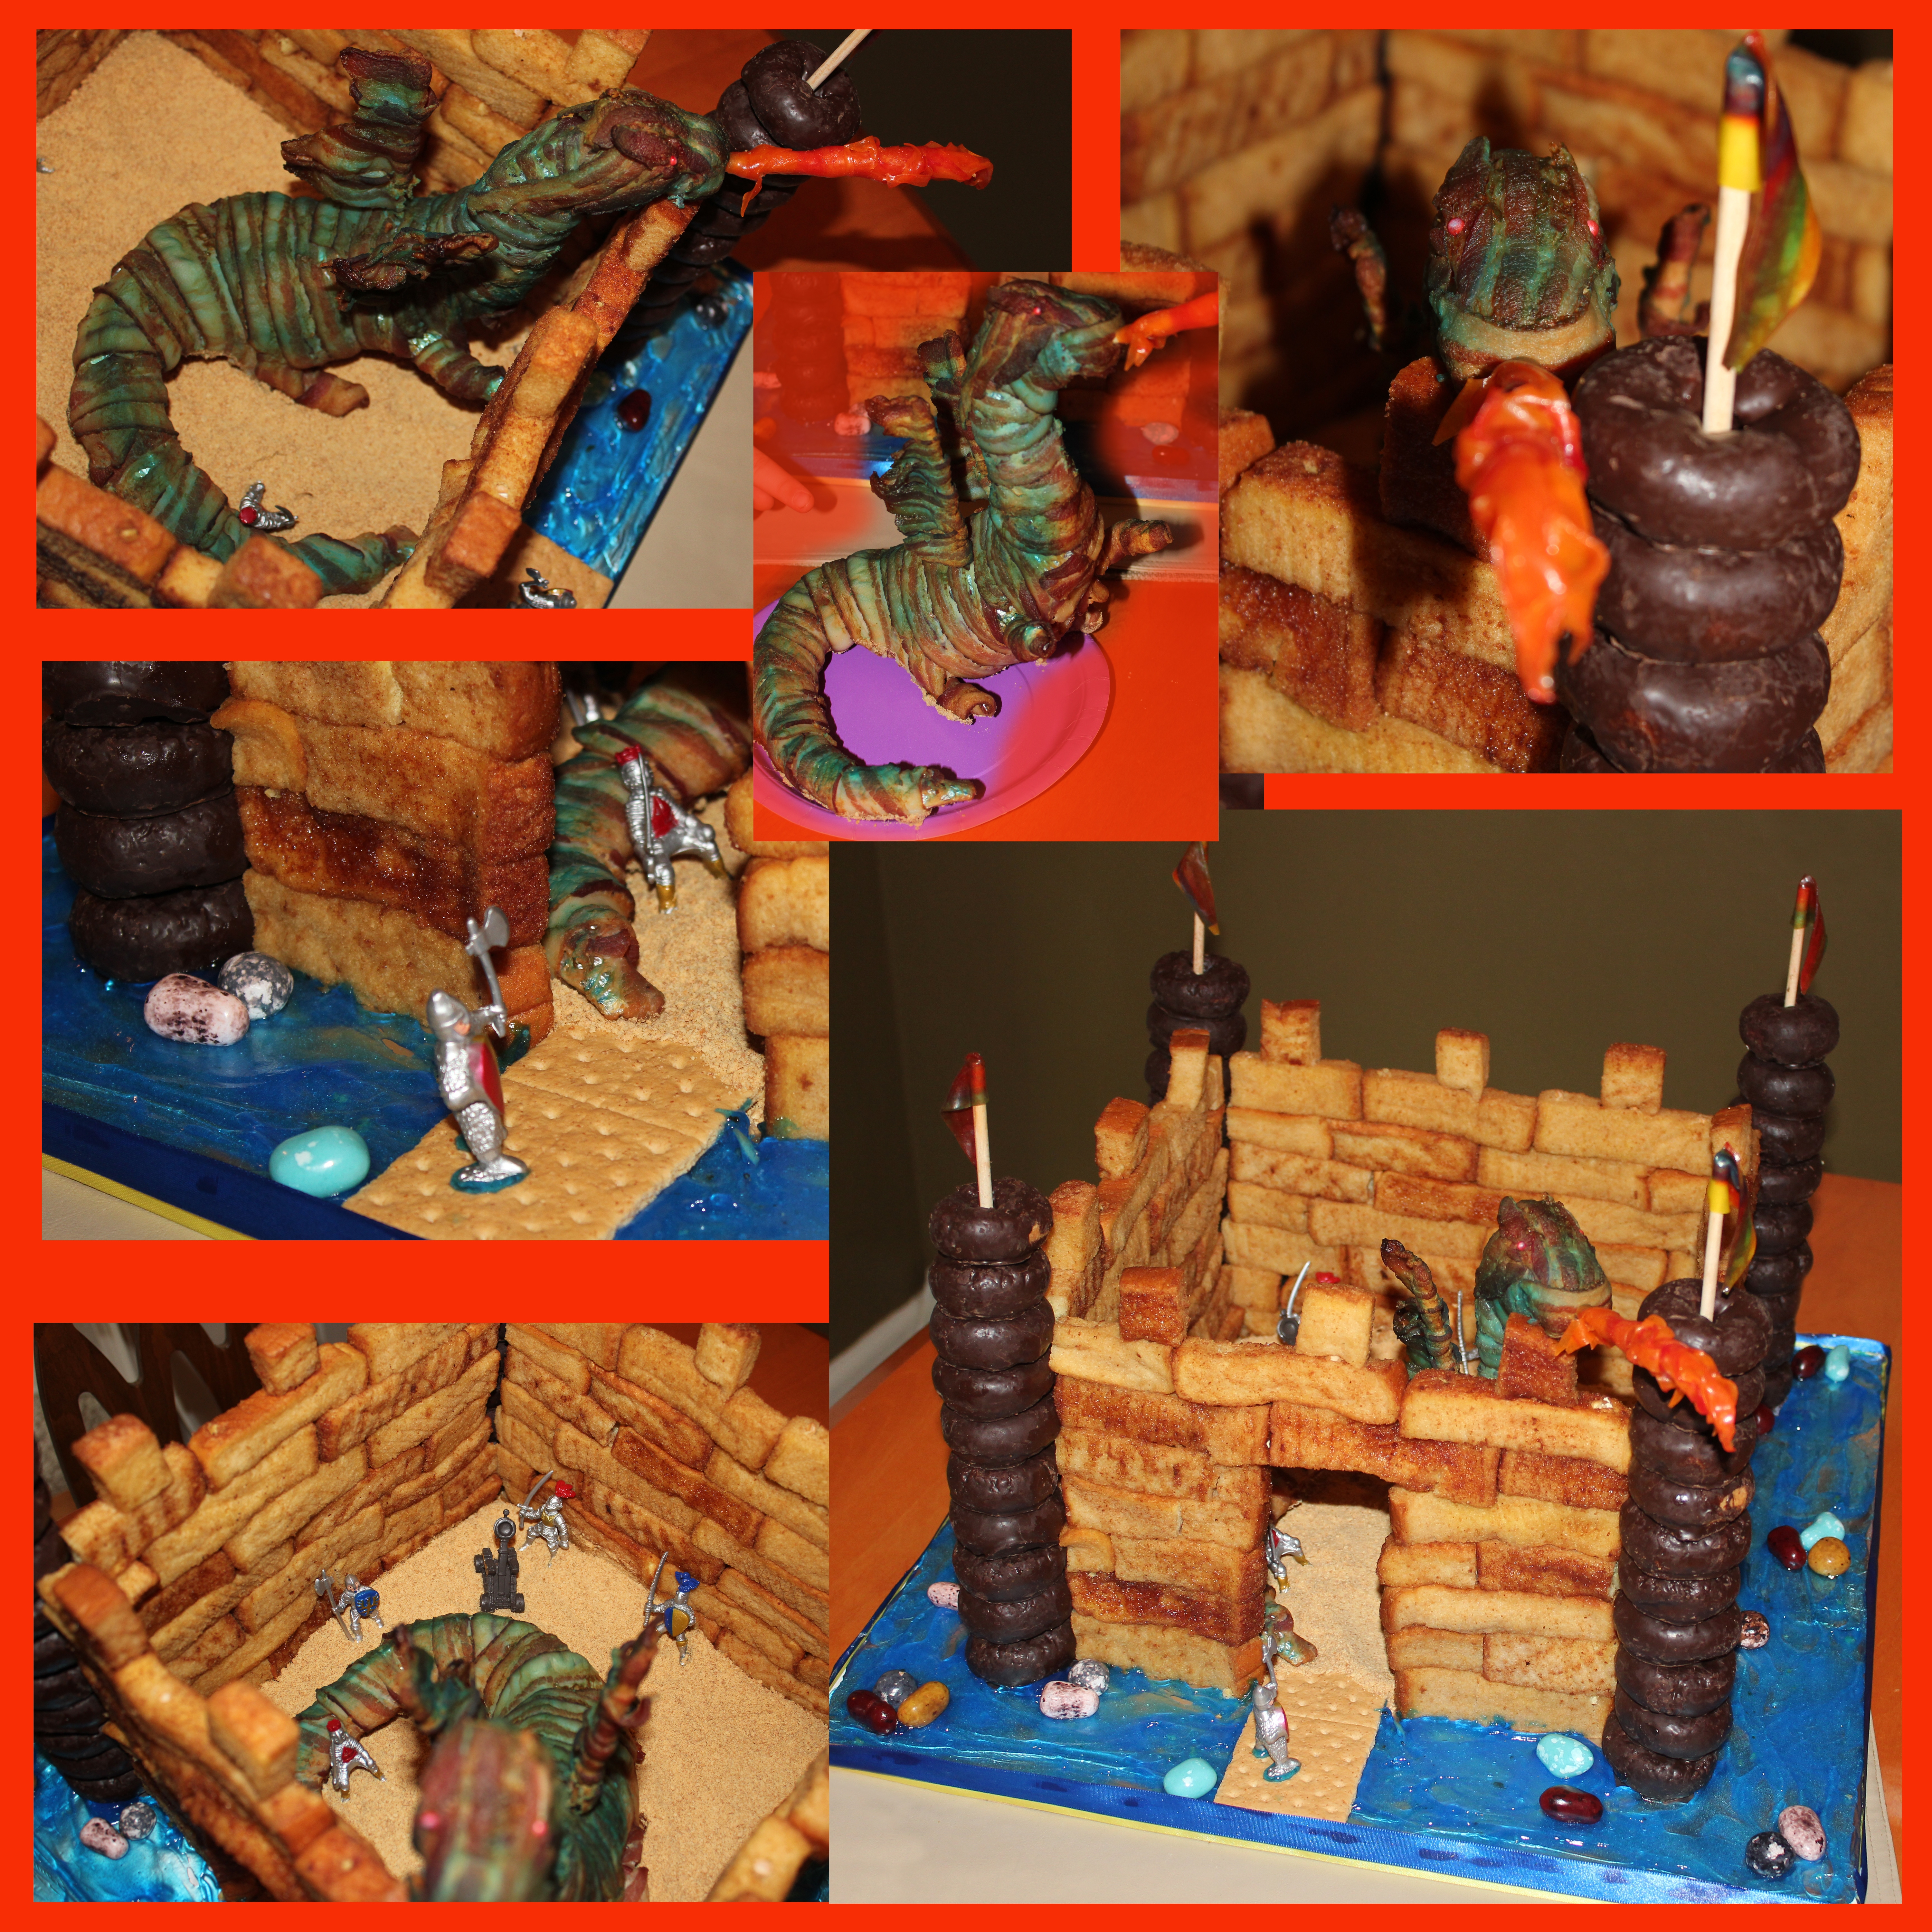 My son's cake request was to make a cake out of french toast sticks. So he got a castle made from french toast sticks and donuts. What's breakfast without bacon! So I made a fire breathing dragon out of bacon. Yes, bacon! It was kind of fun thinking...